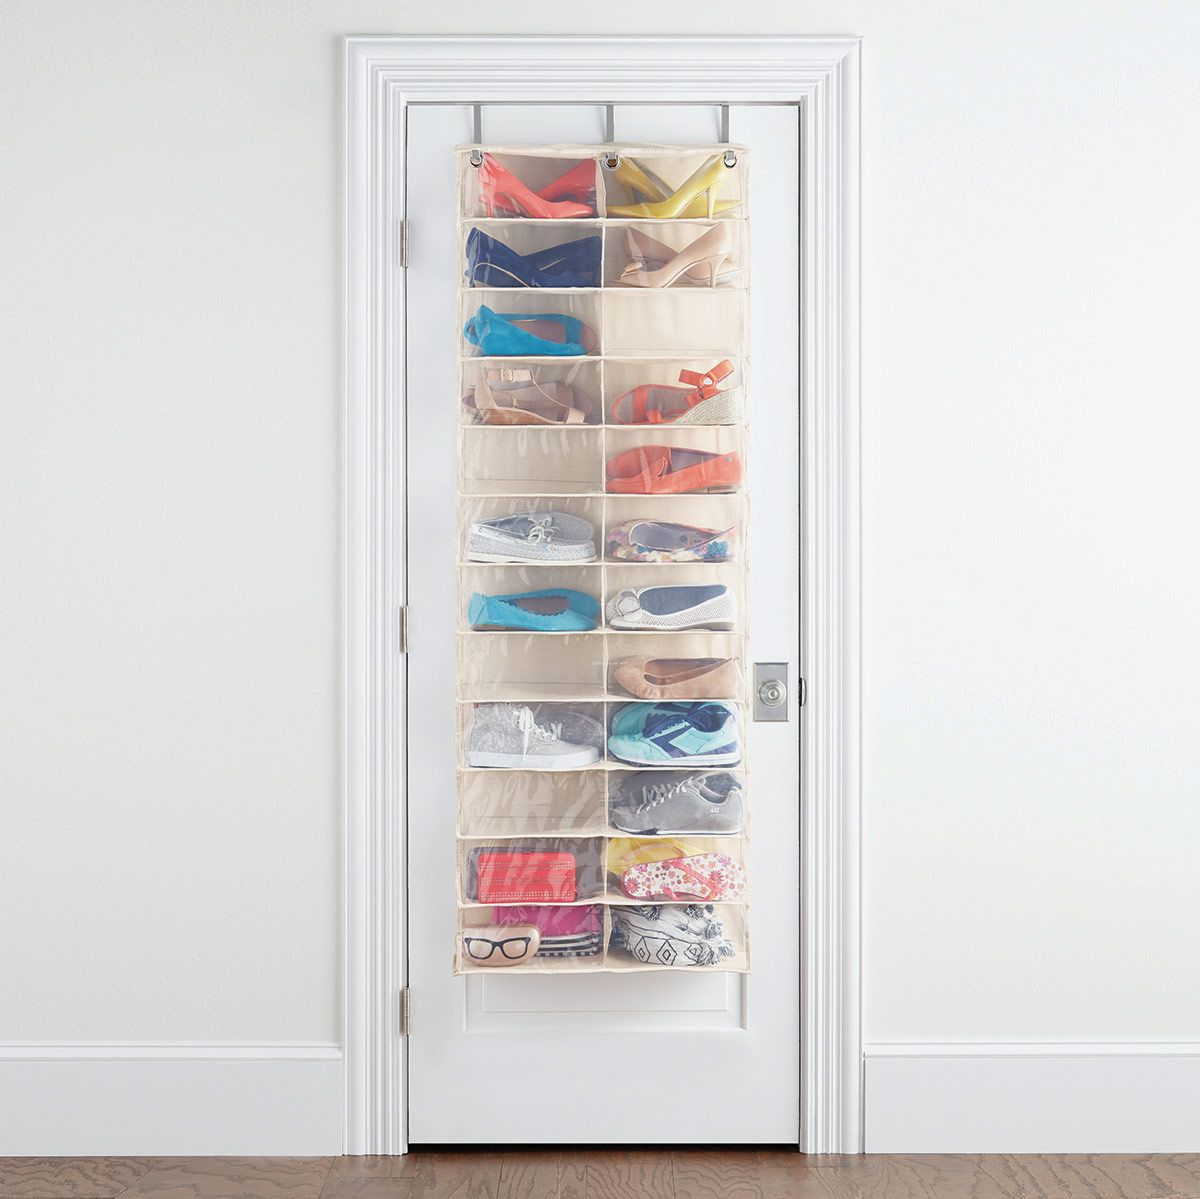 The Container Store 24-Pocket Over the Door Shoe Organizer